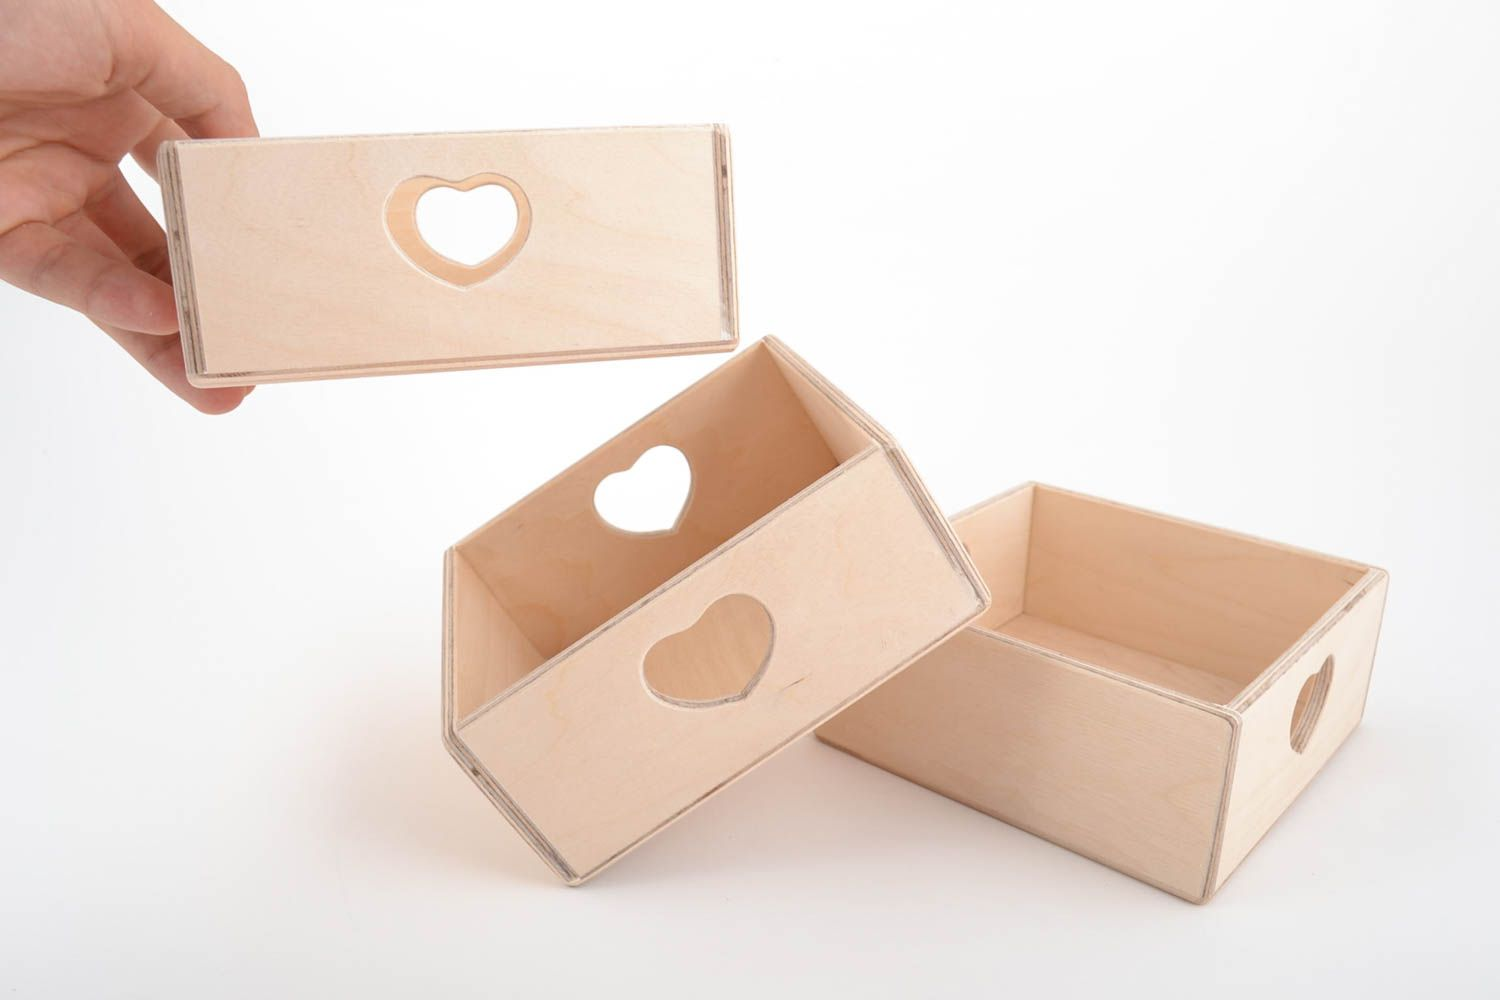 Set of 3 handmade plywood craft blanks DIY boxes with hearts photo 5